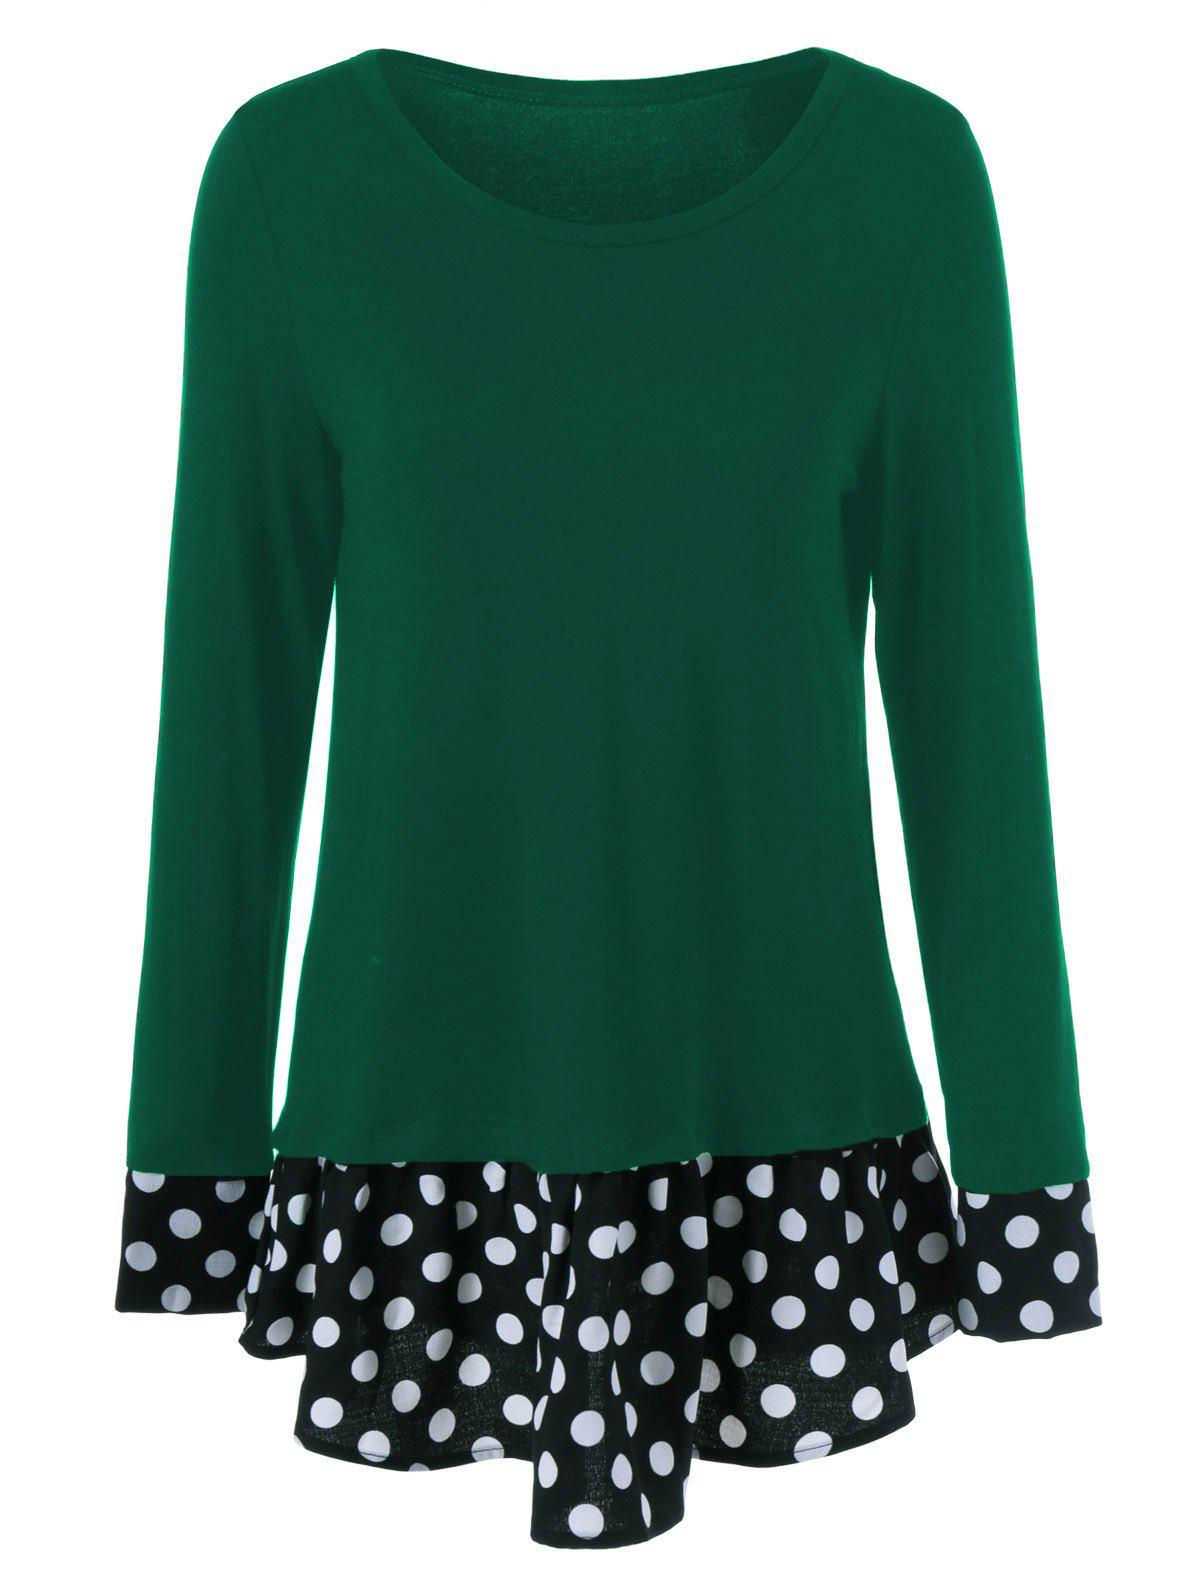 Plus Size Polka Dot Trim Flounced T-Shirt - GREEN 2XL